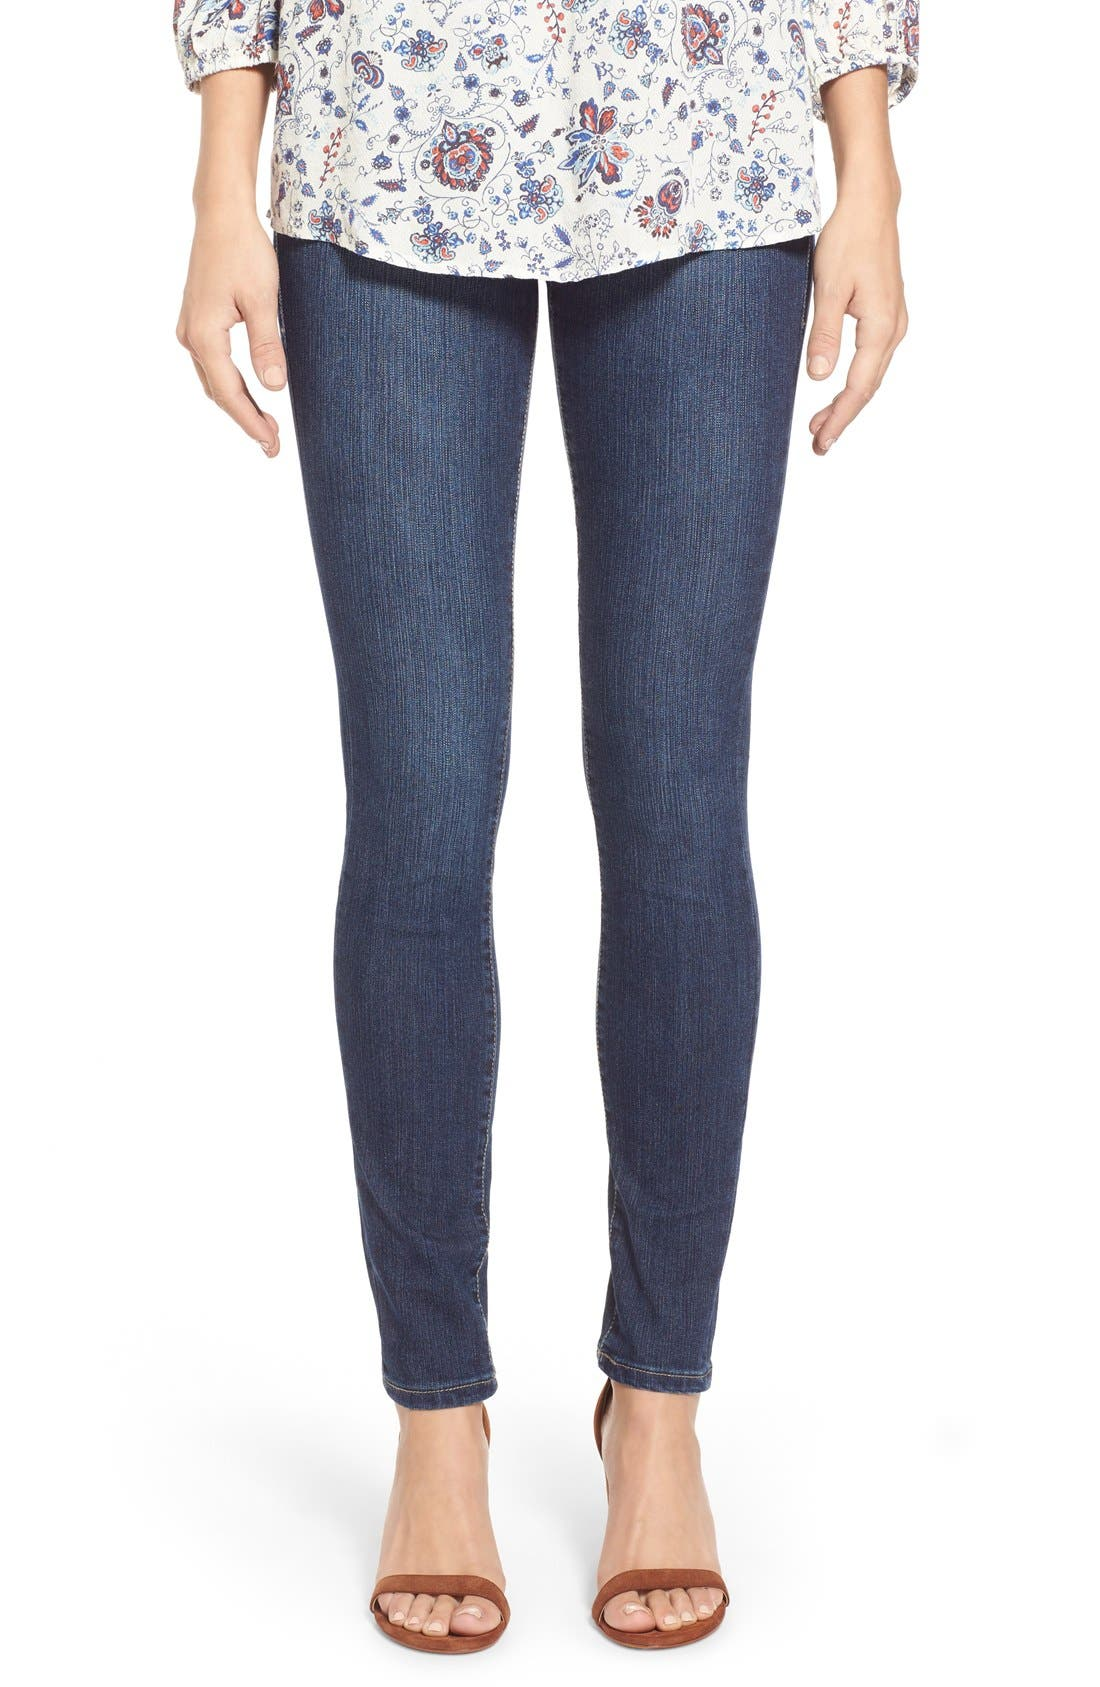 Main Image - Jag Jeans 'Nora' Pull-On Stretch Skinny Jeans (Anchor Blue) (Regular & Petite)